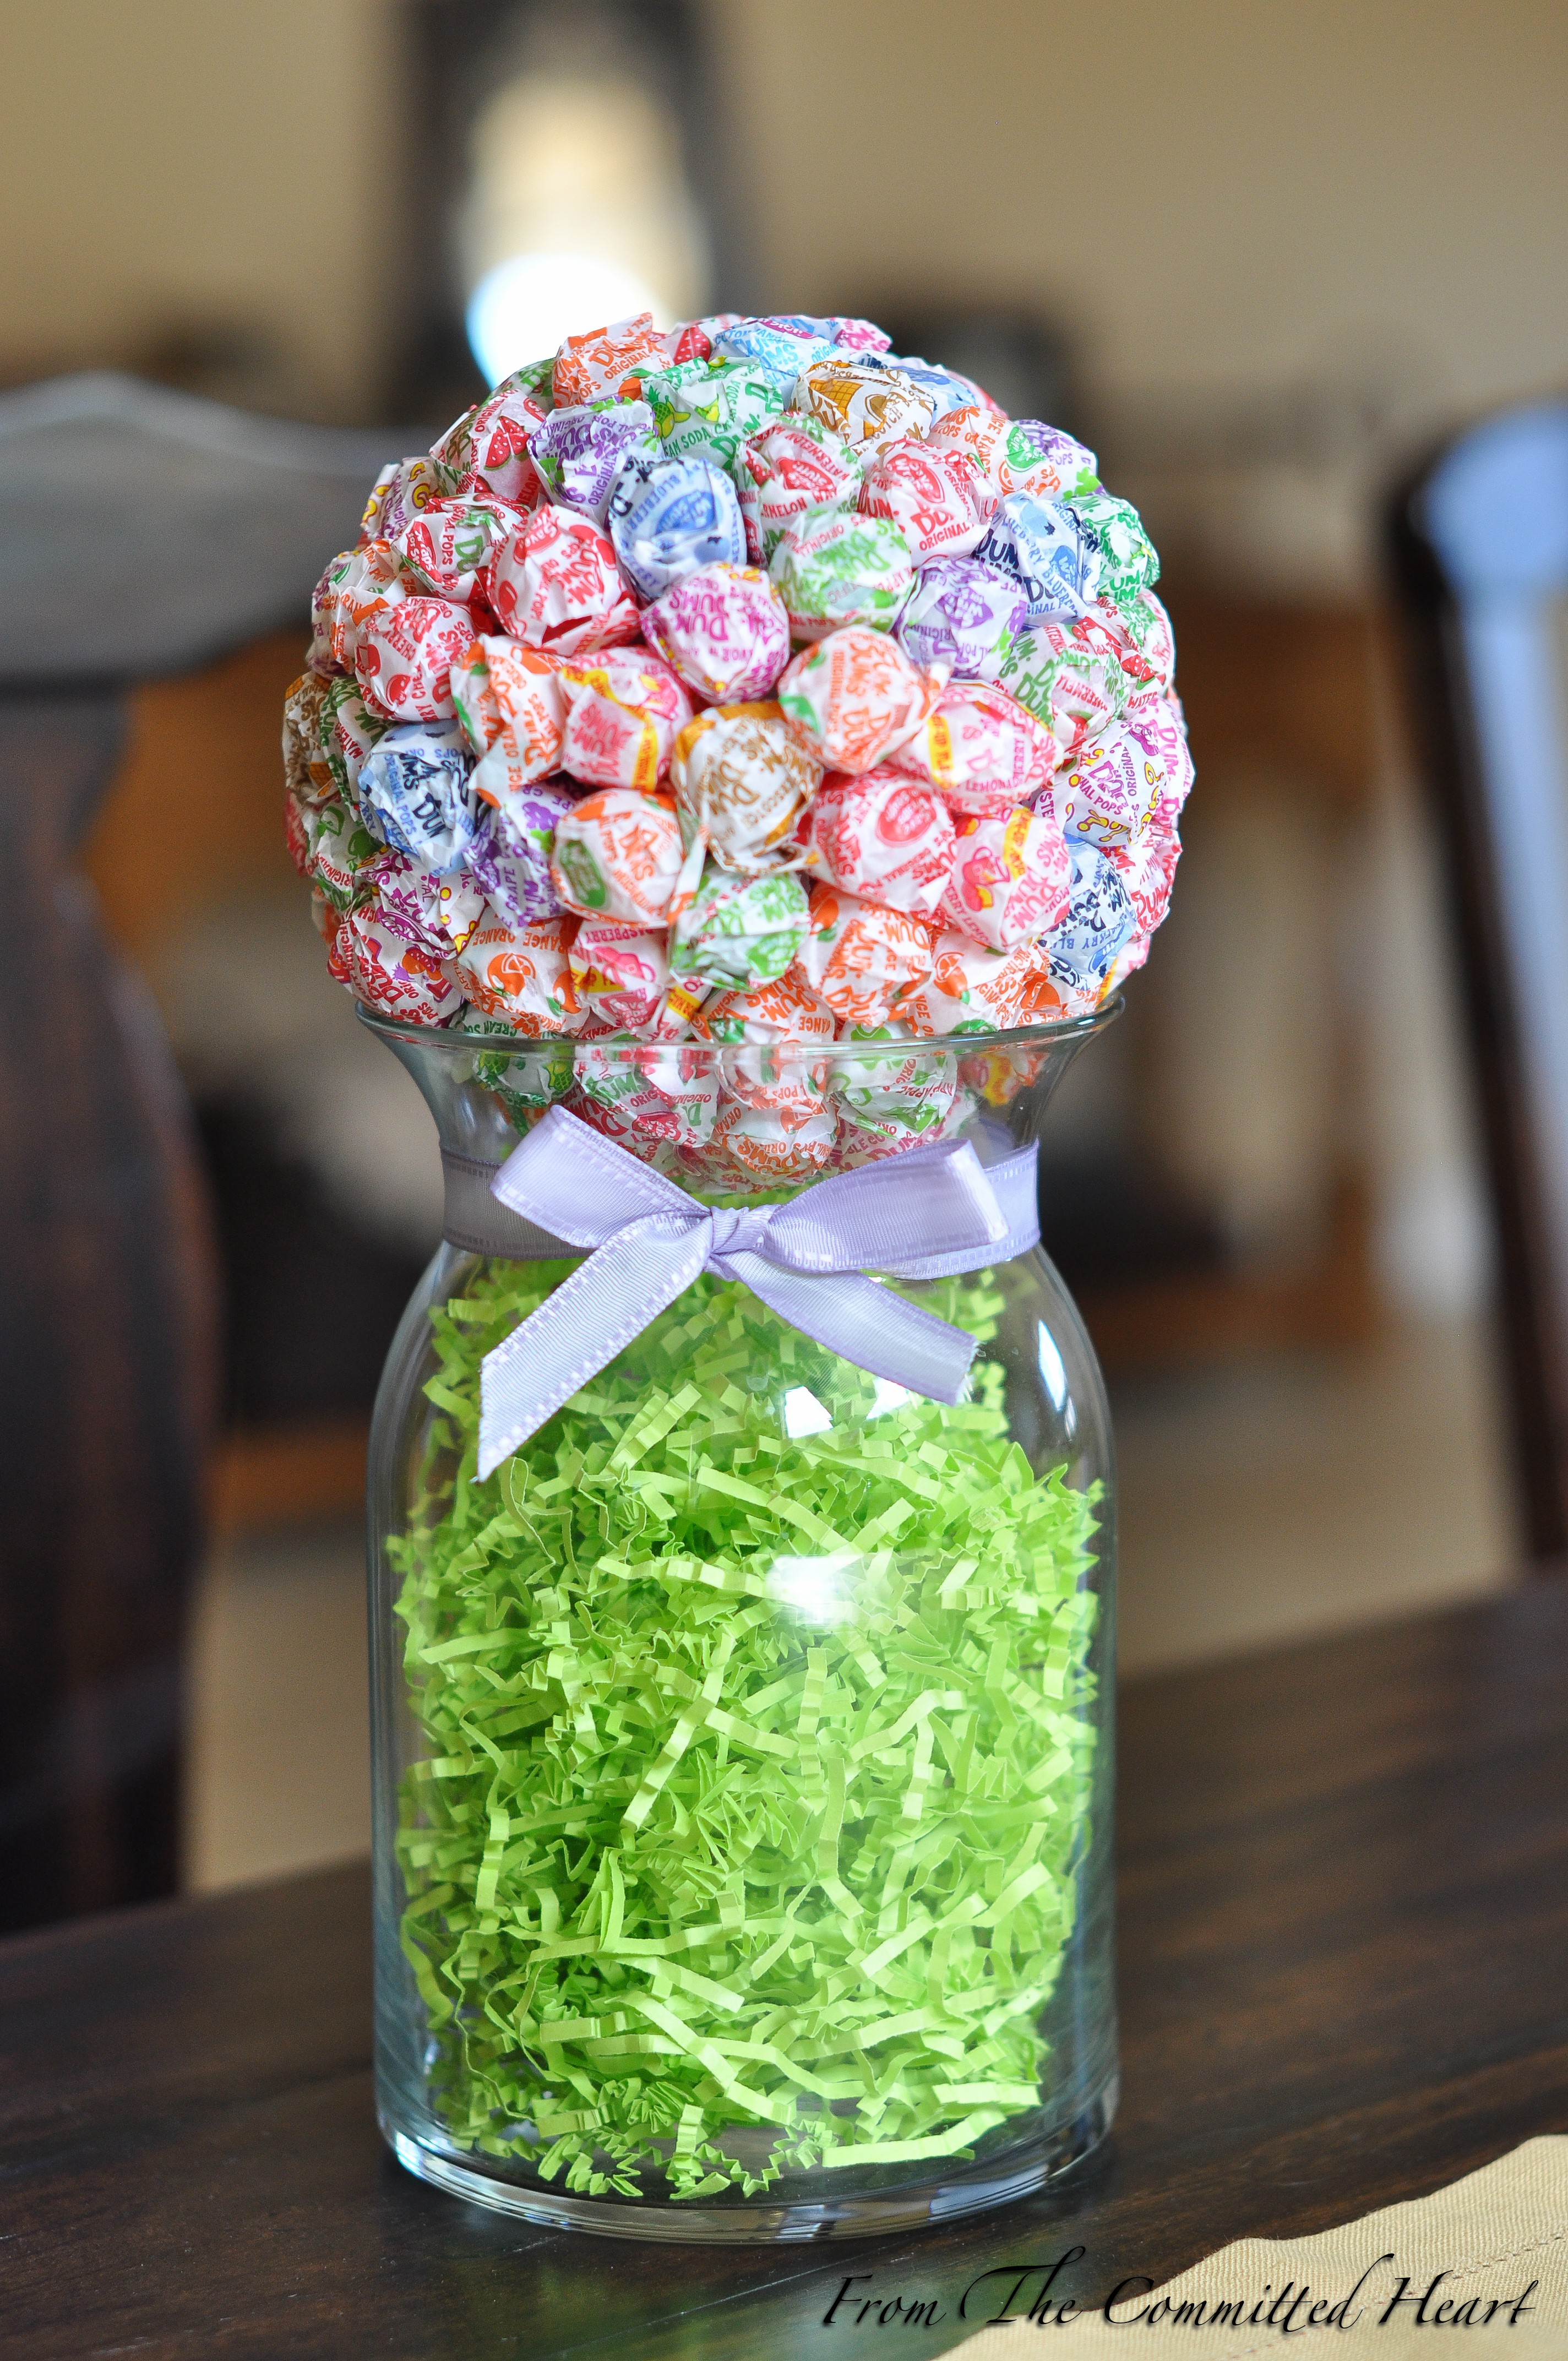 Candy Ball Centerpiece : Dum pops from the committed heart